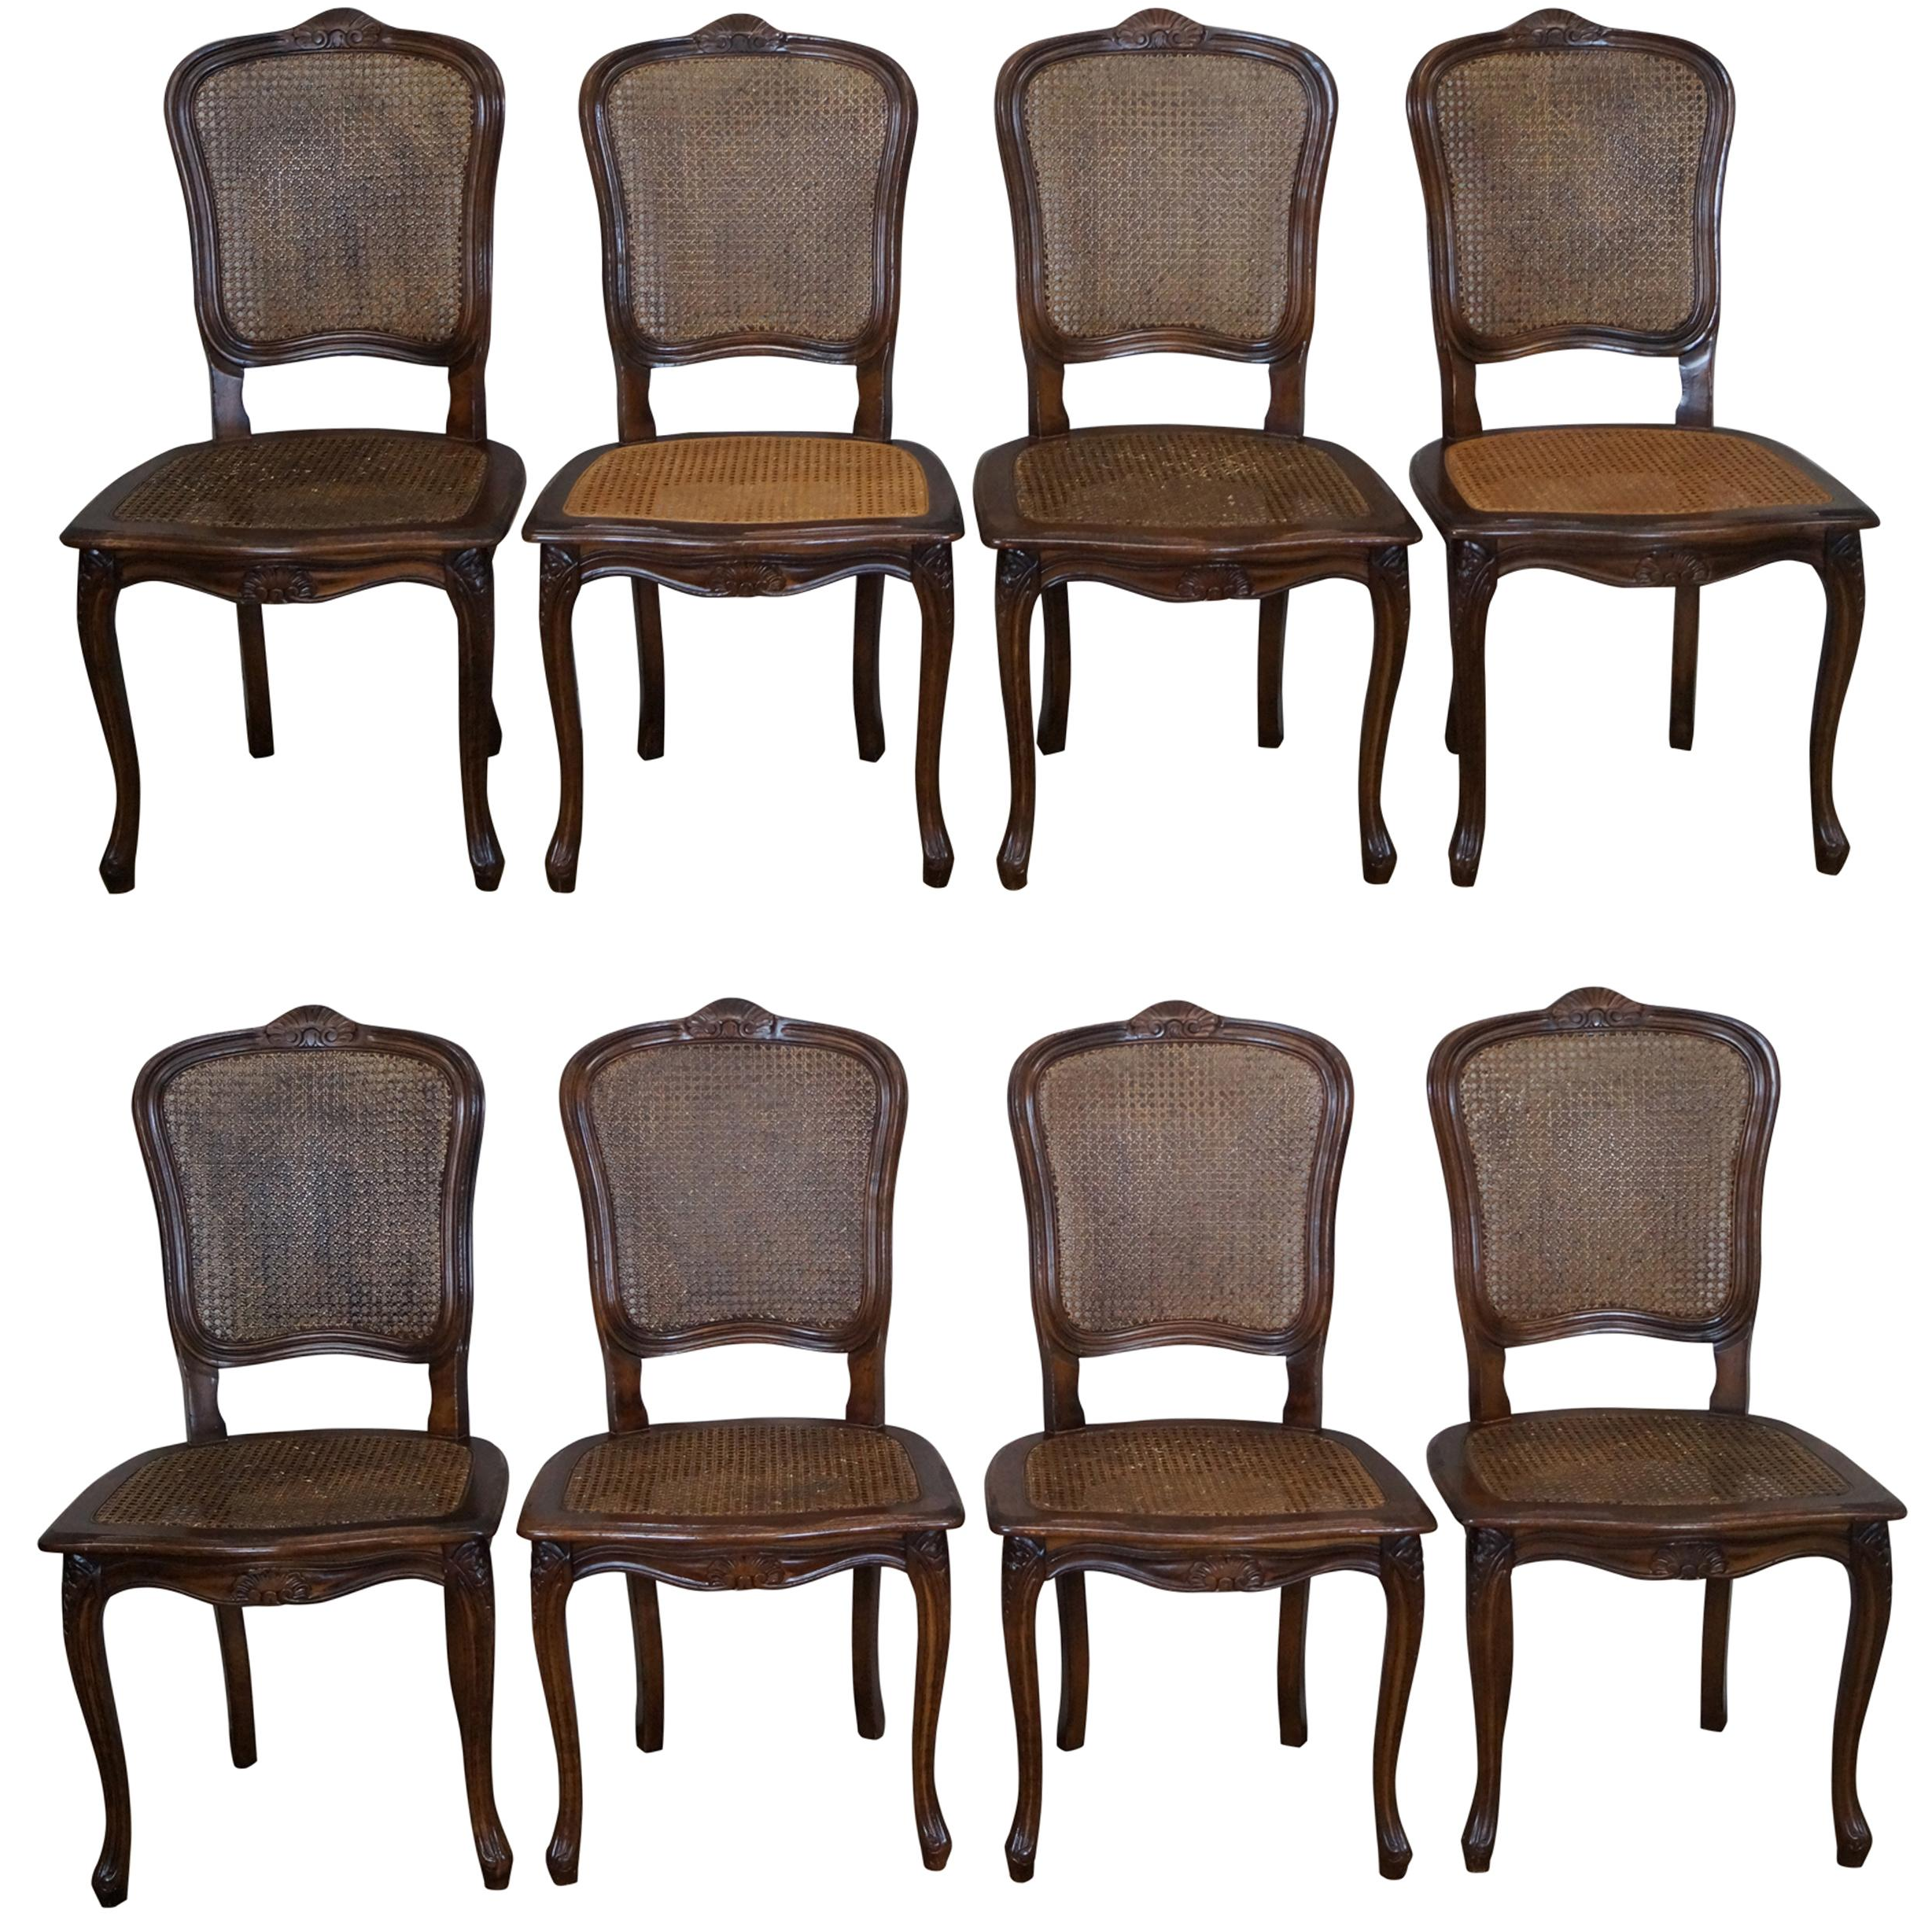 Louis xv dining chair - Image Of French Louis Xv Cane Dining Chairs Set Of 8